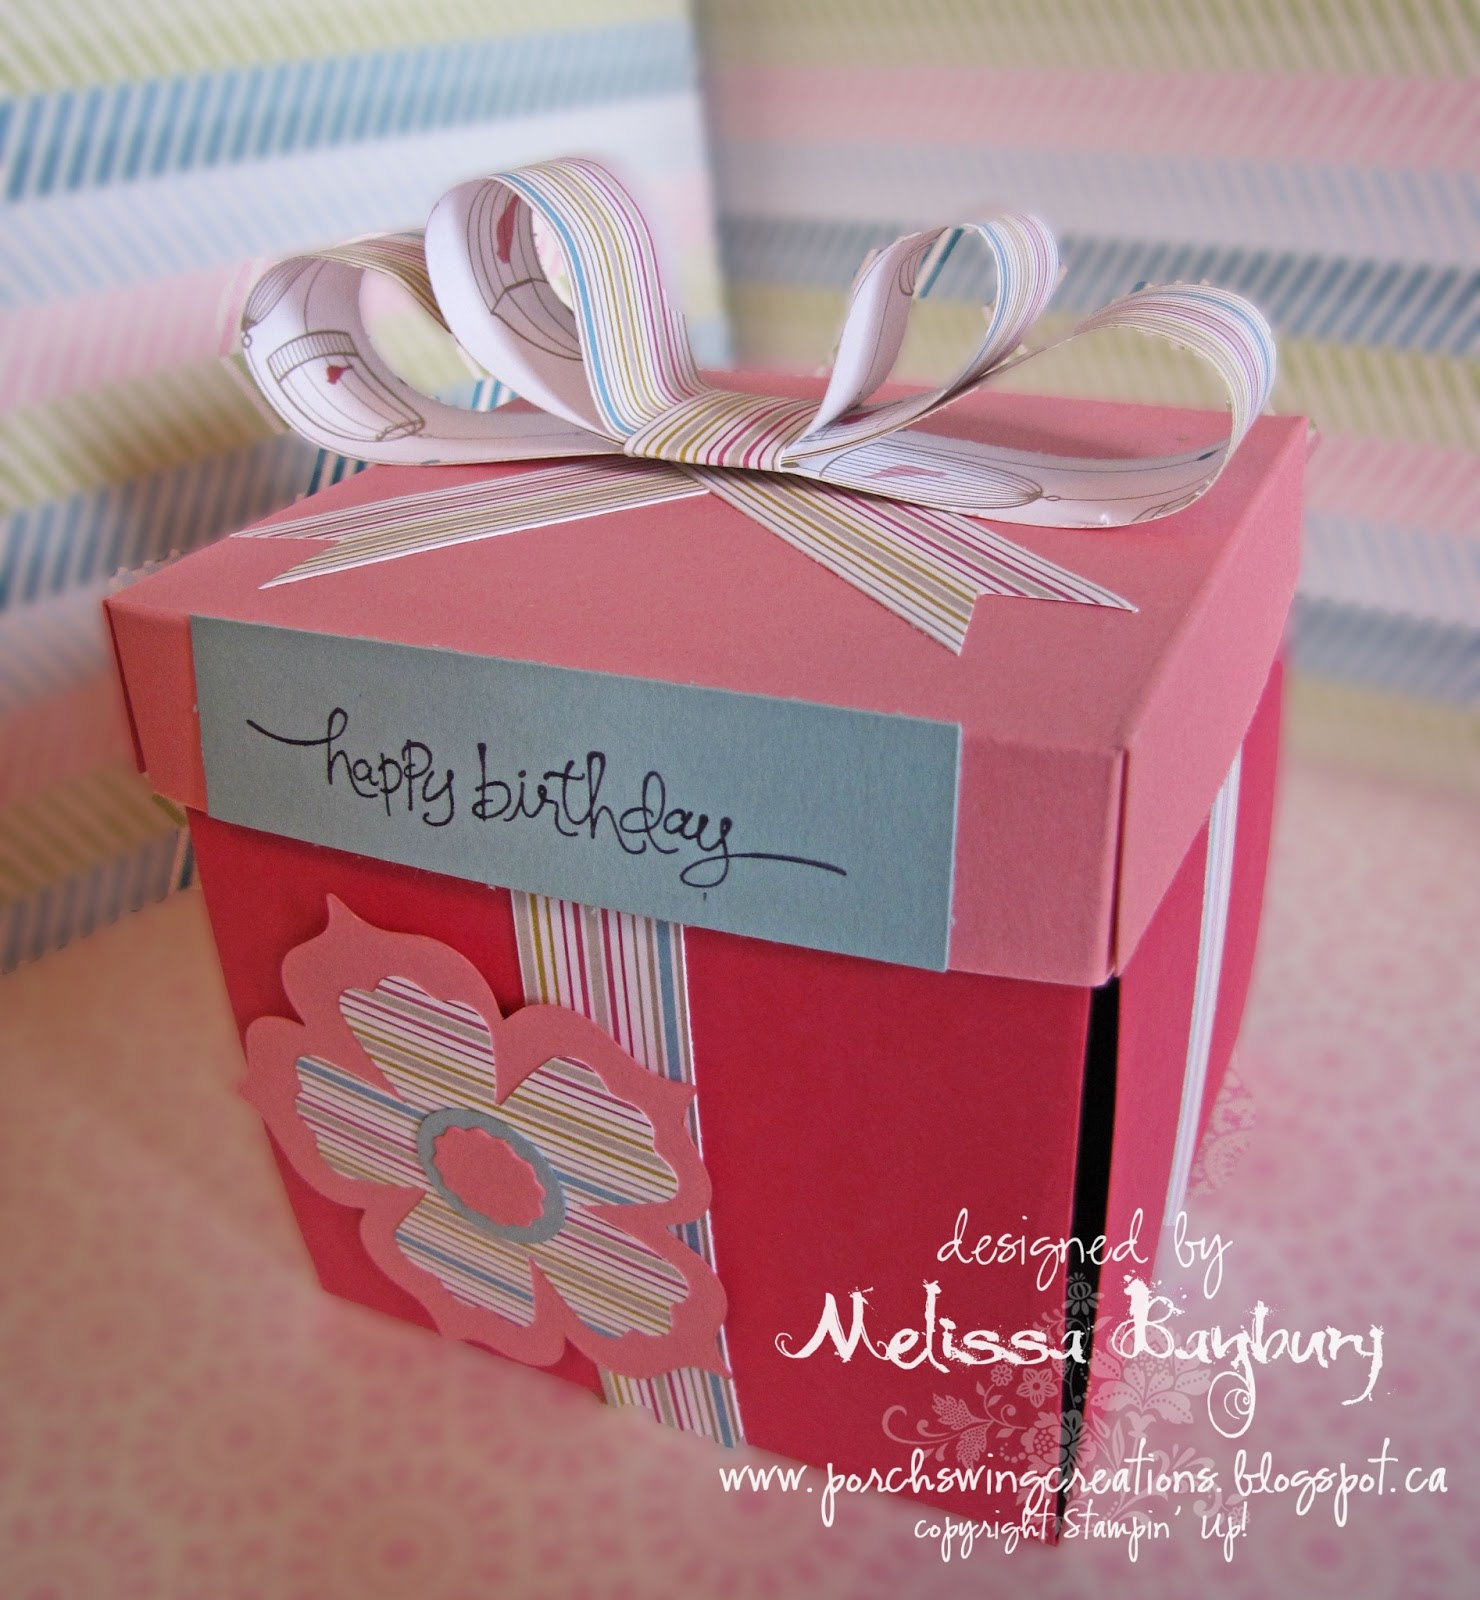 Porch Swing Creations: Birthday Box Fit for a Princess